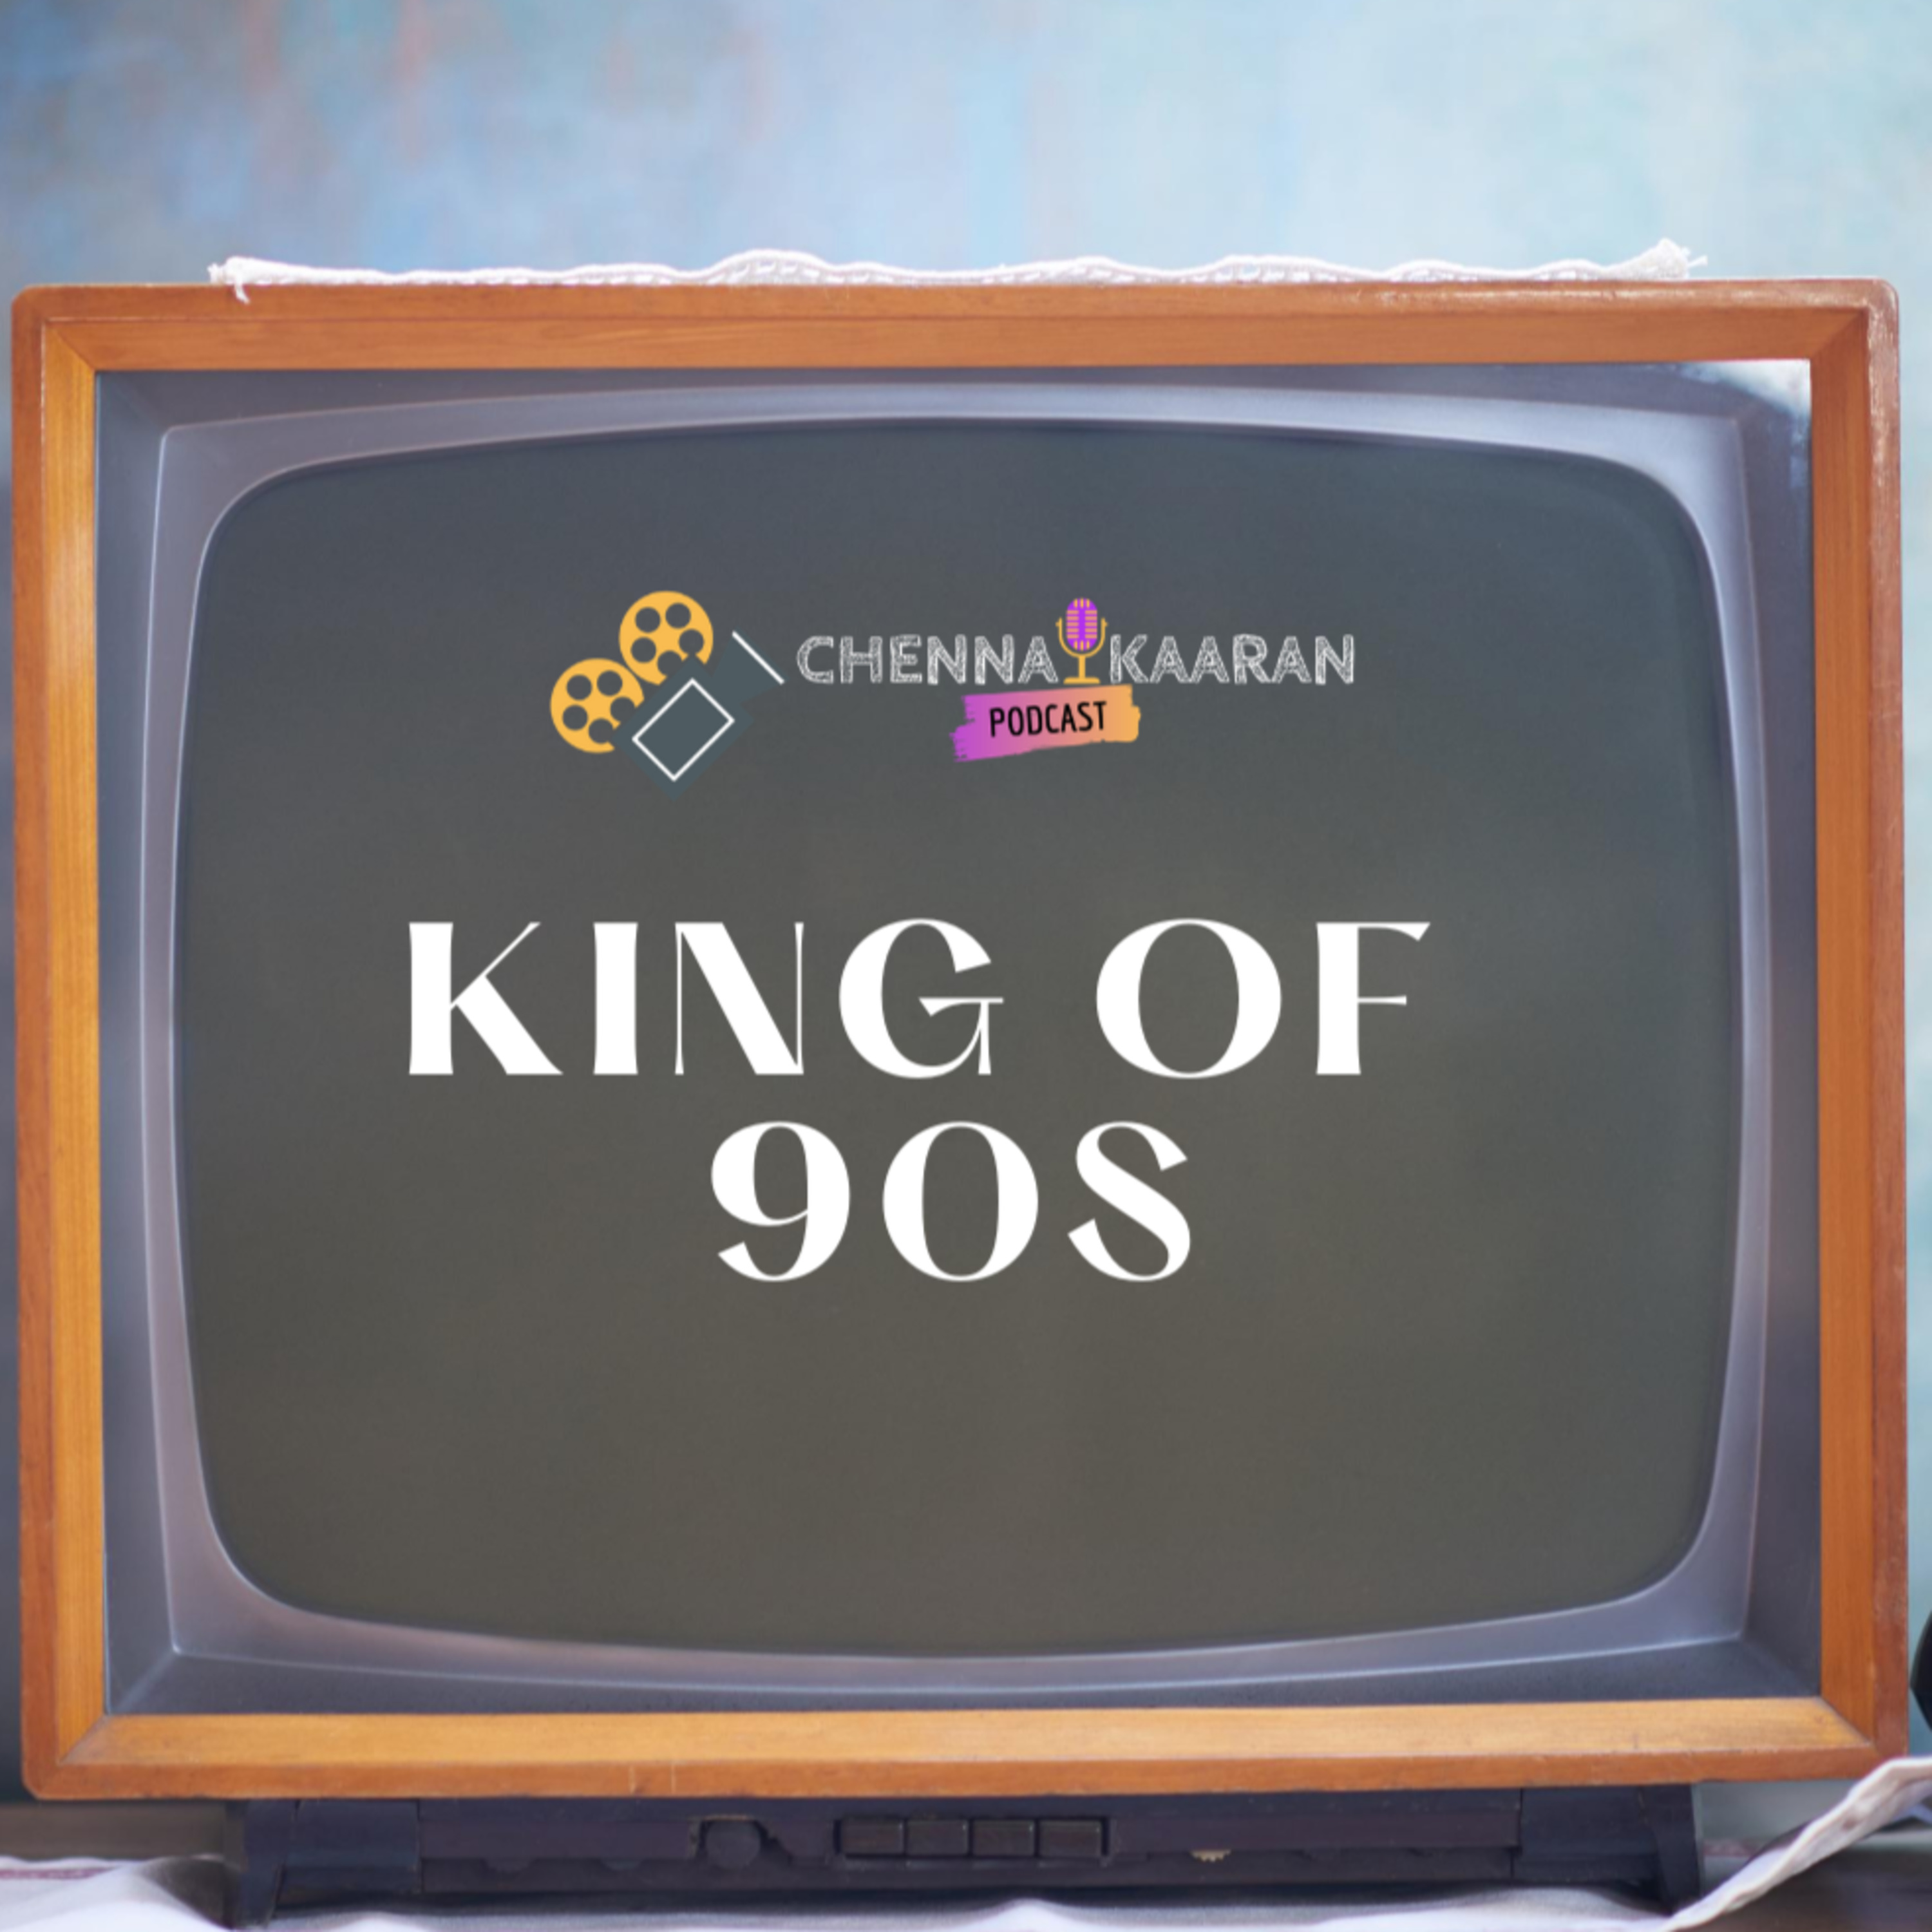 S2E07 - King of 90's - Kannethirey Thondrinal (1998) Tamil Movie